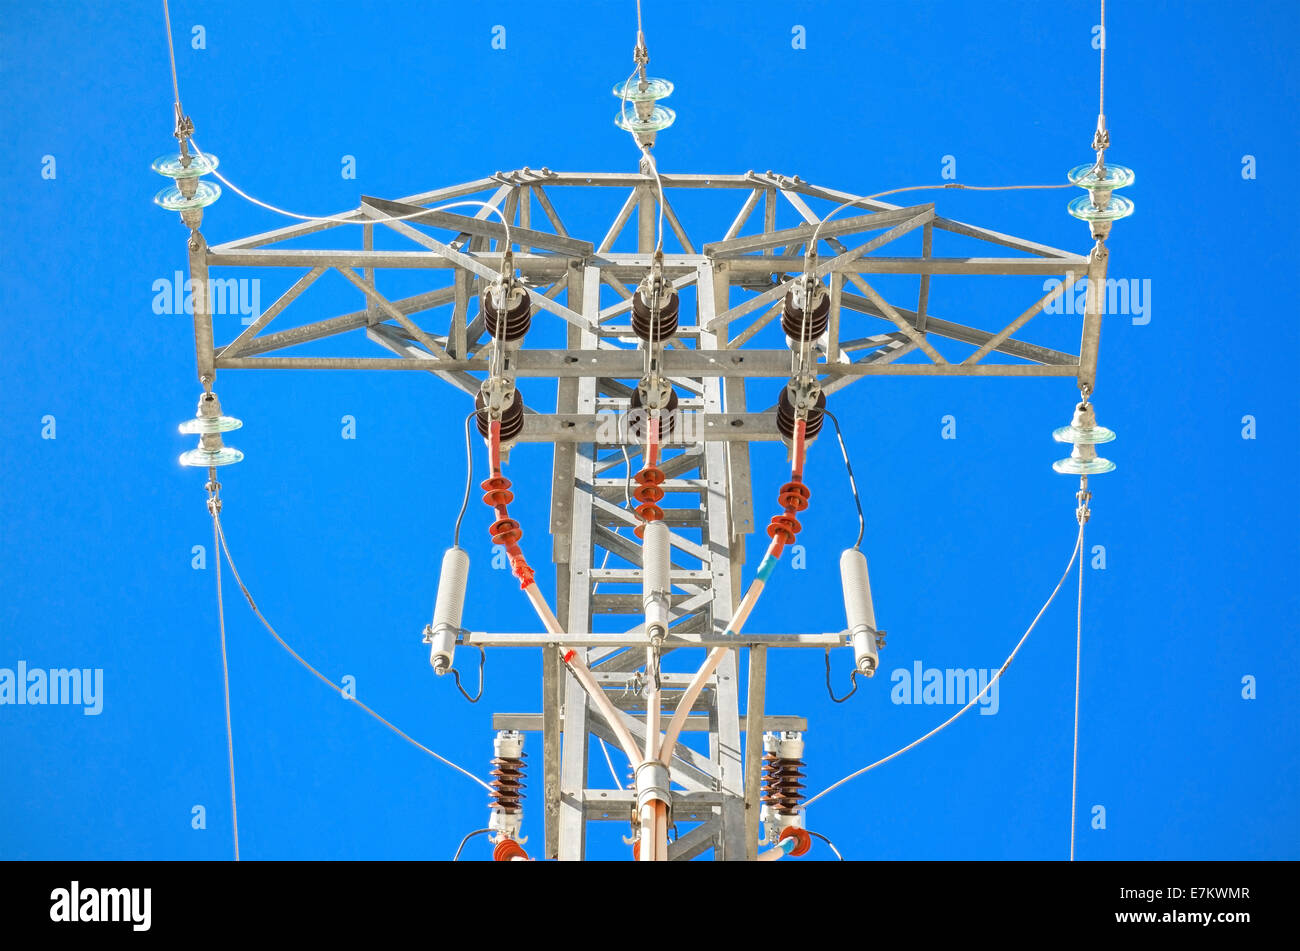 Detailed high voltage power line over brightly blue sky. - Stock Image